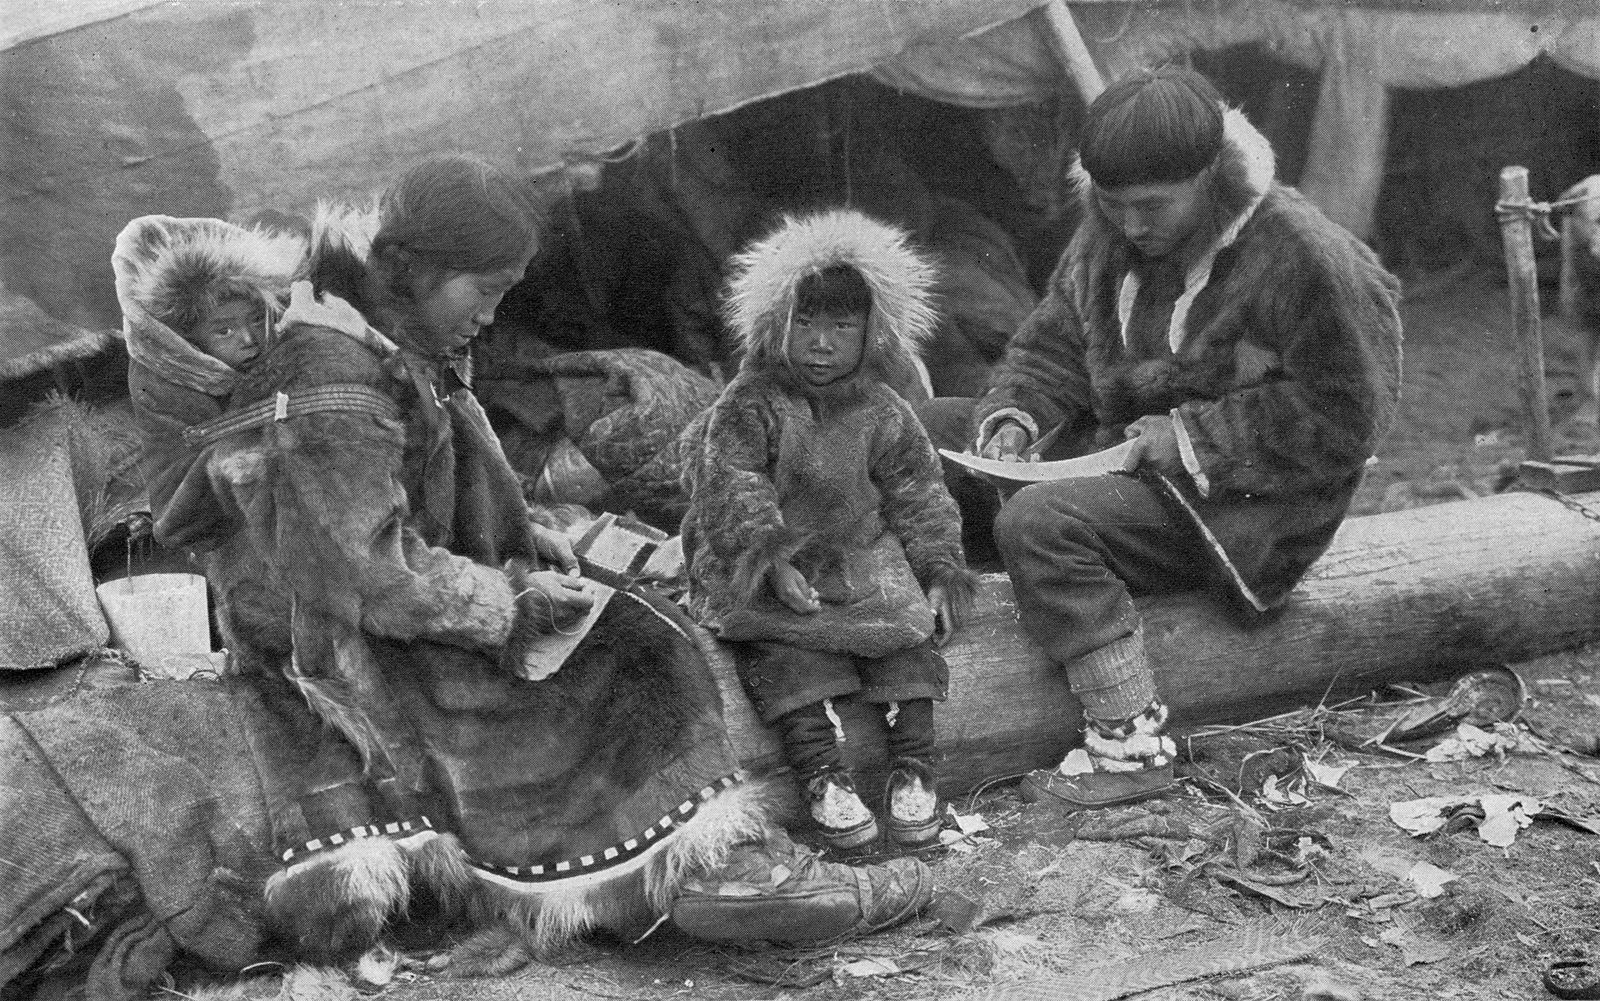 Black and white photograph of traditional inuit sitting on a log